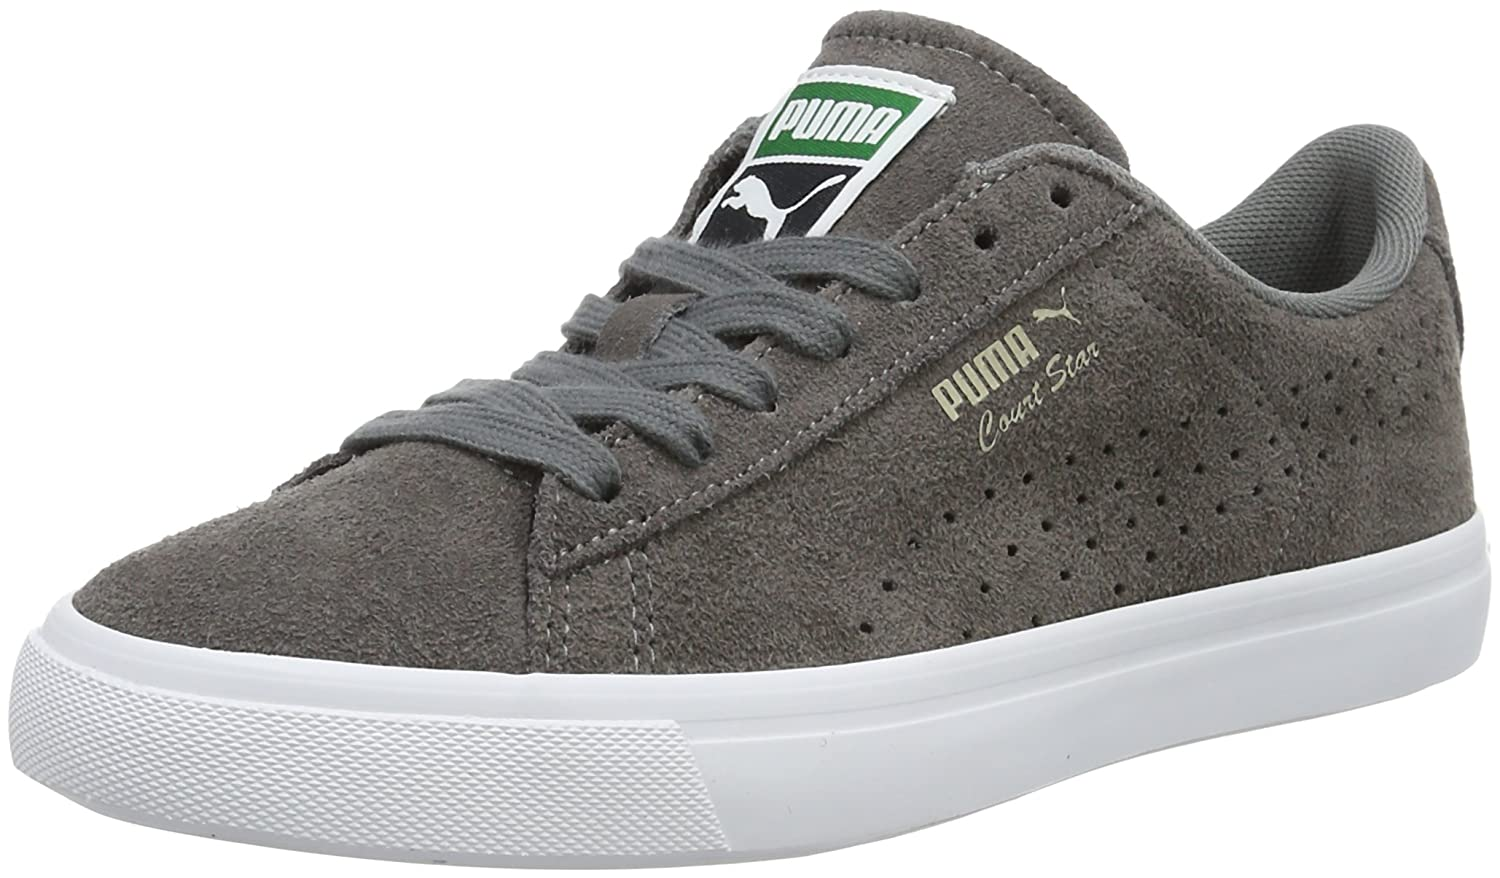 Puma Unisex-Erwachsene Court Star VULC Suede Low-Top  44 EU|Grau (Steel Gray-puma White 04)